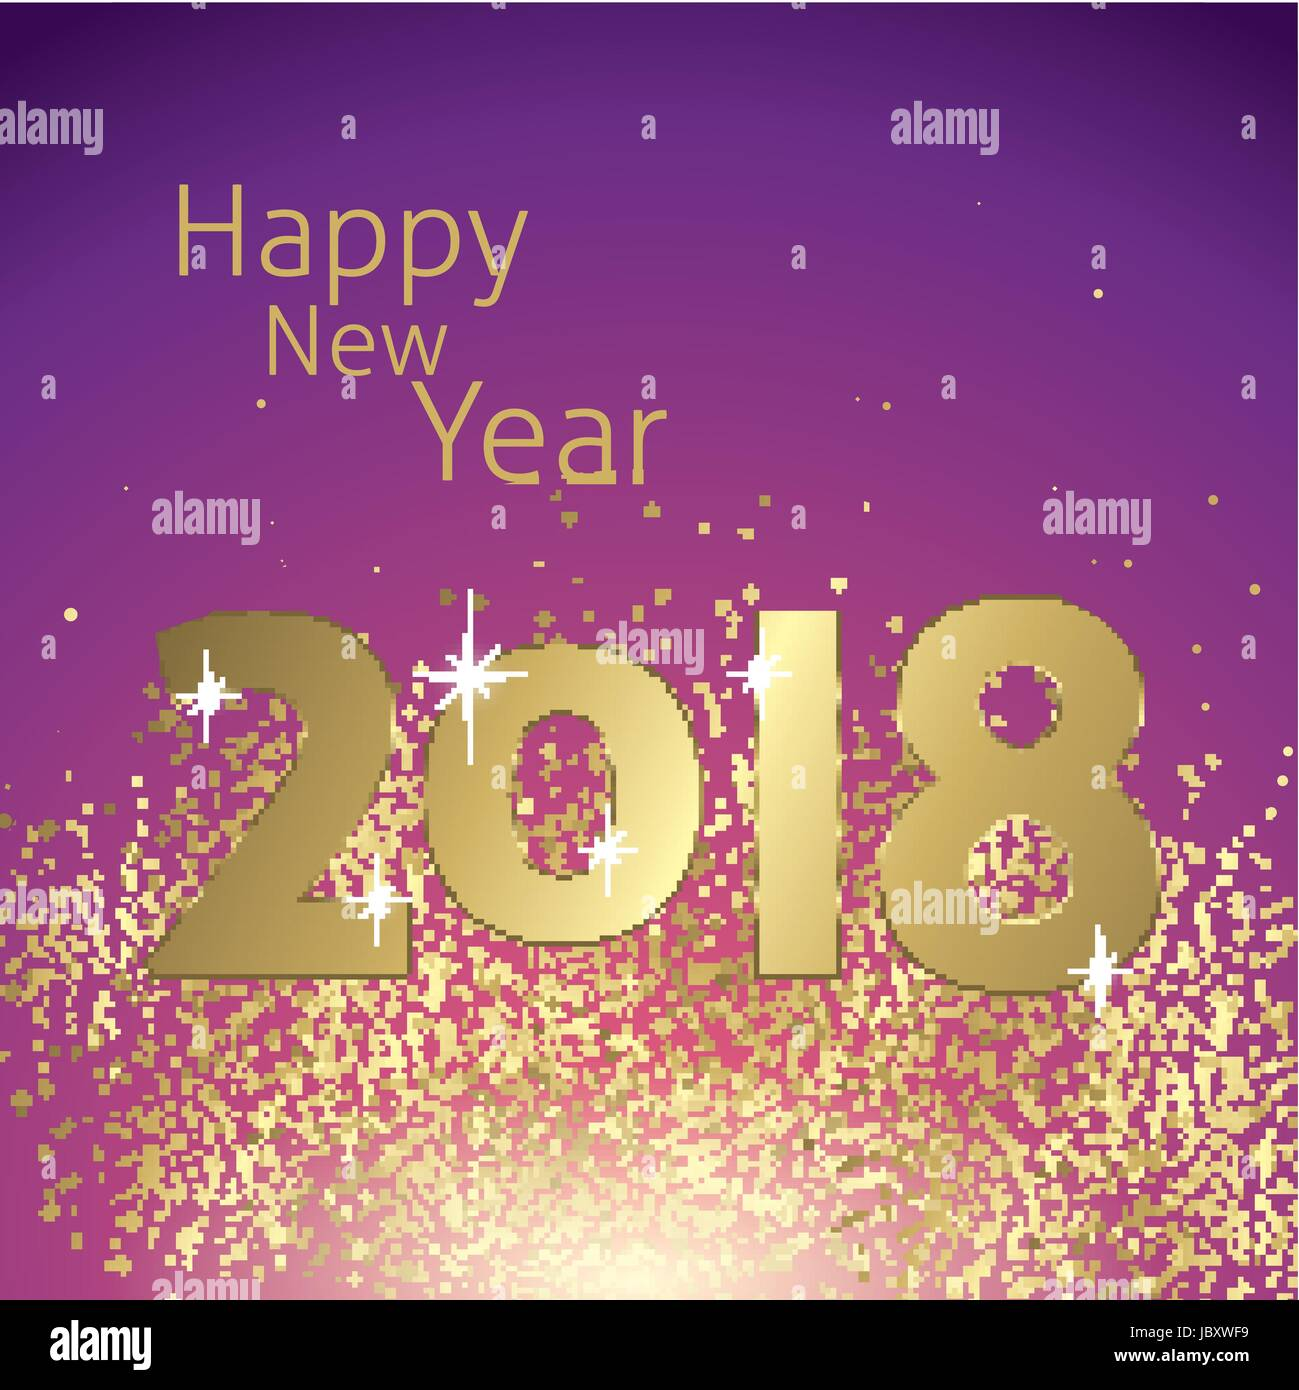 Happy new year 2018 greeting card vector stock vector art happy new year 2018 greeting card vector kristyandbryce Images